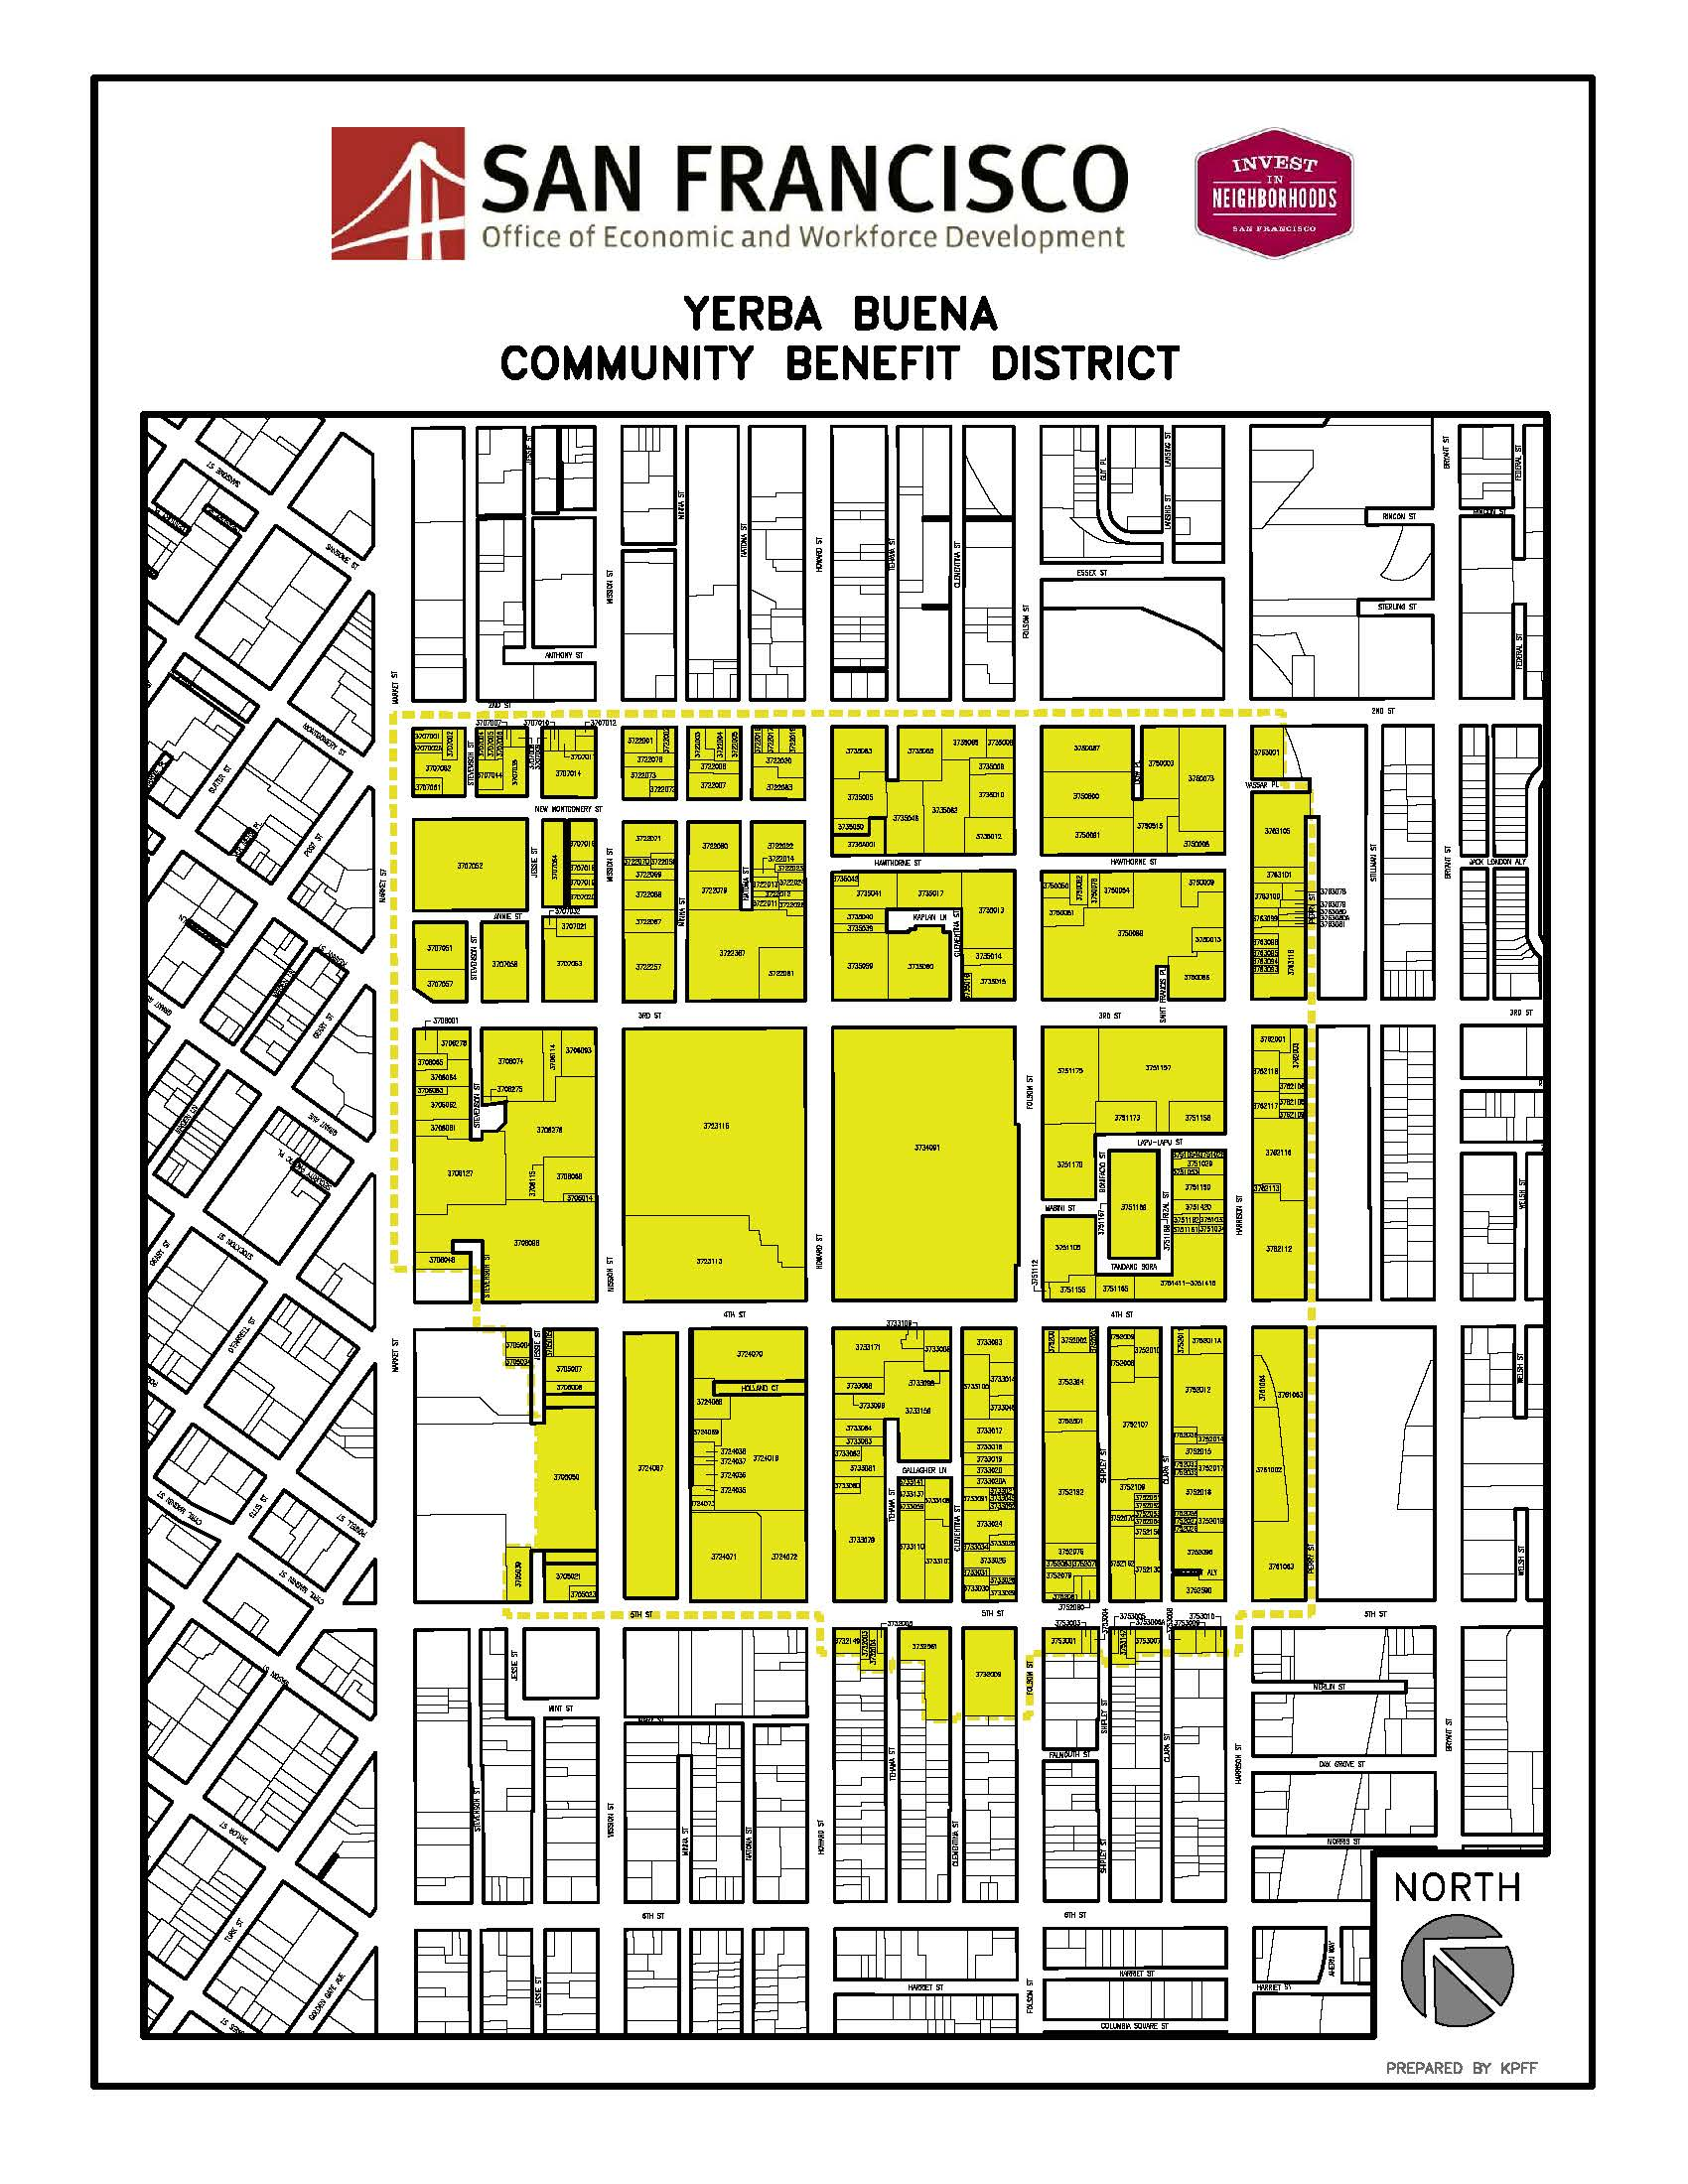 Map of Yerba Buena Community Benefit District